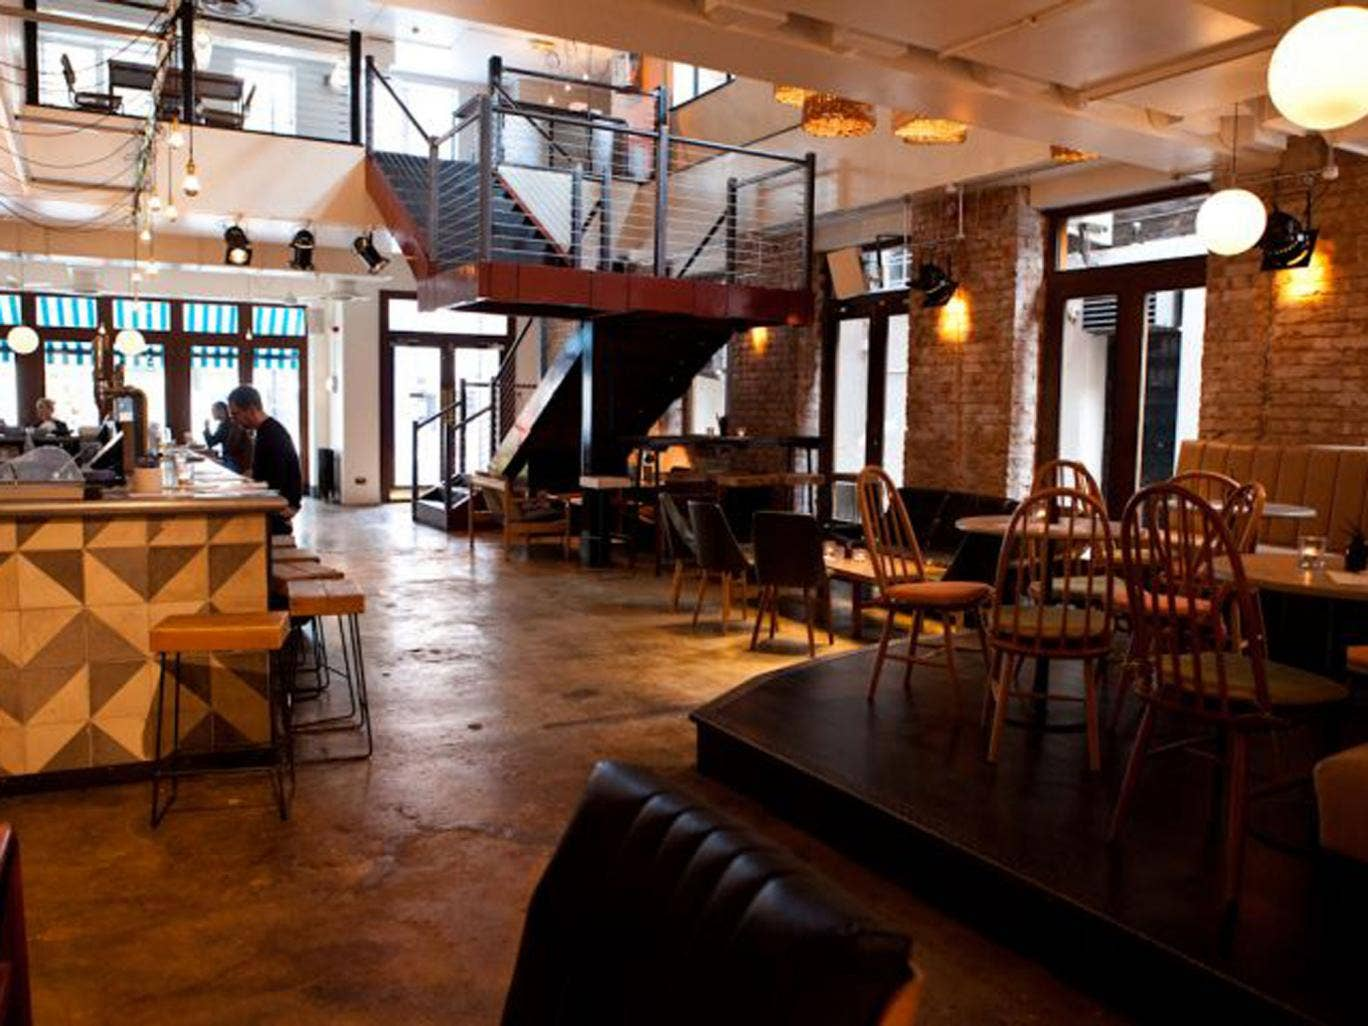 Ben Spalding won rave reviews for his innovative style of cooking at John Salt